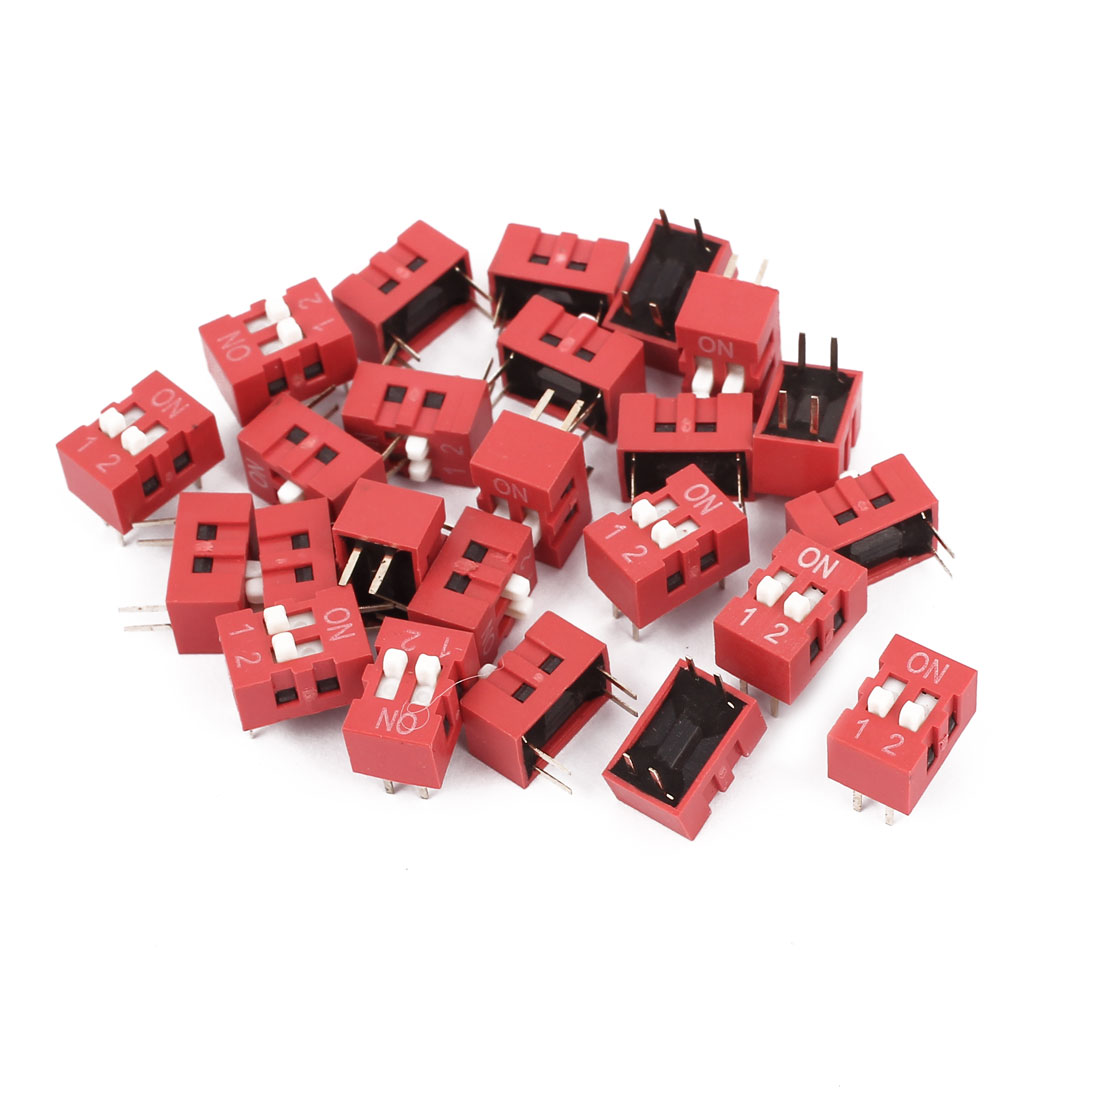 24 Pcs DIP Switch 2 Row 4 Terminals 2 Positions Sliding Switch 2.54mm Pitch